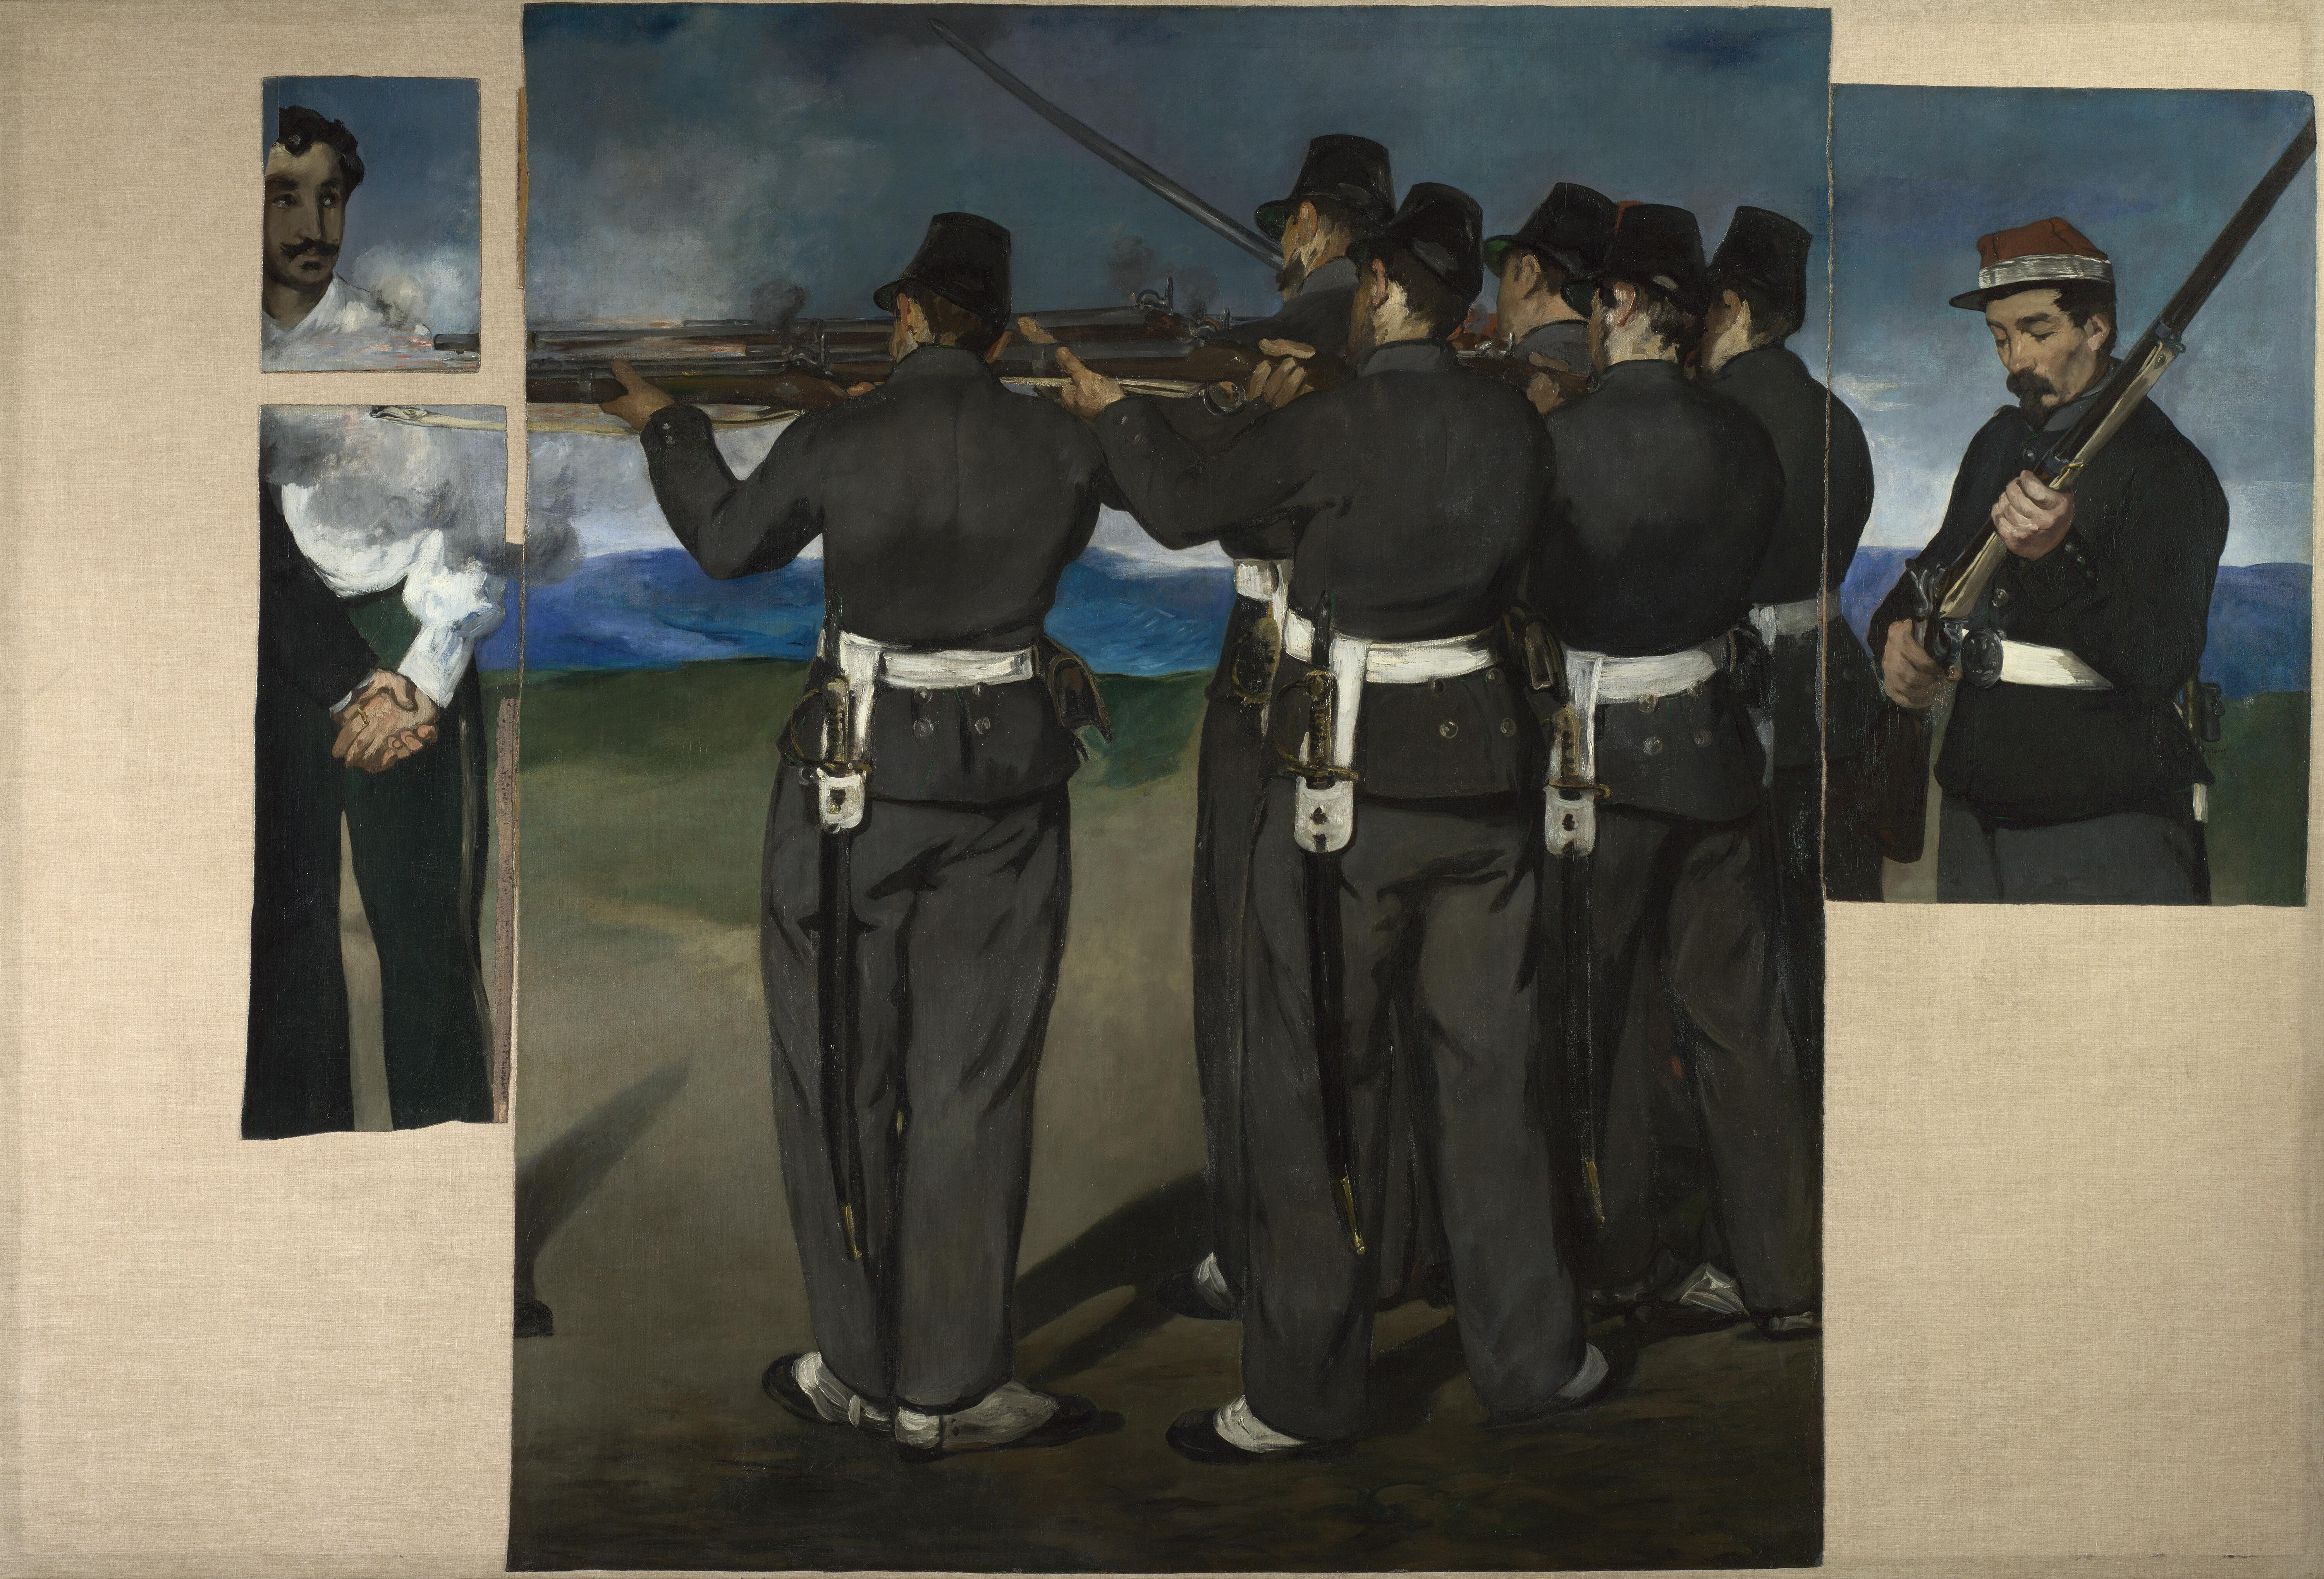 https://upload.wikimedia.org/wikipedia/commons/9/9f/%C3%89douard_Manet_-_L%27execution_de_Maximilien_%28London%29.jpg?uselang=ru